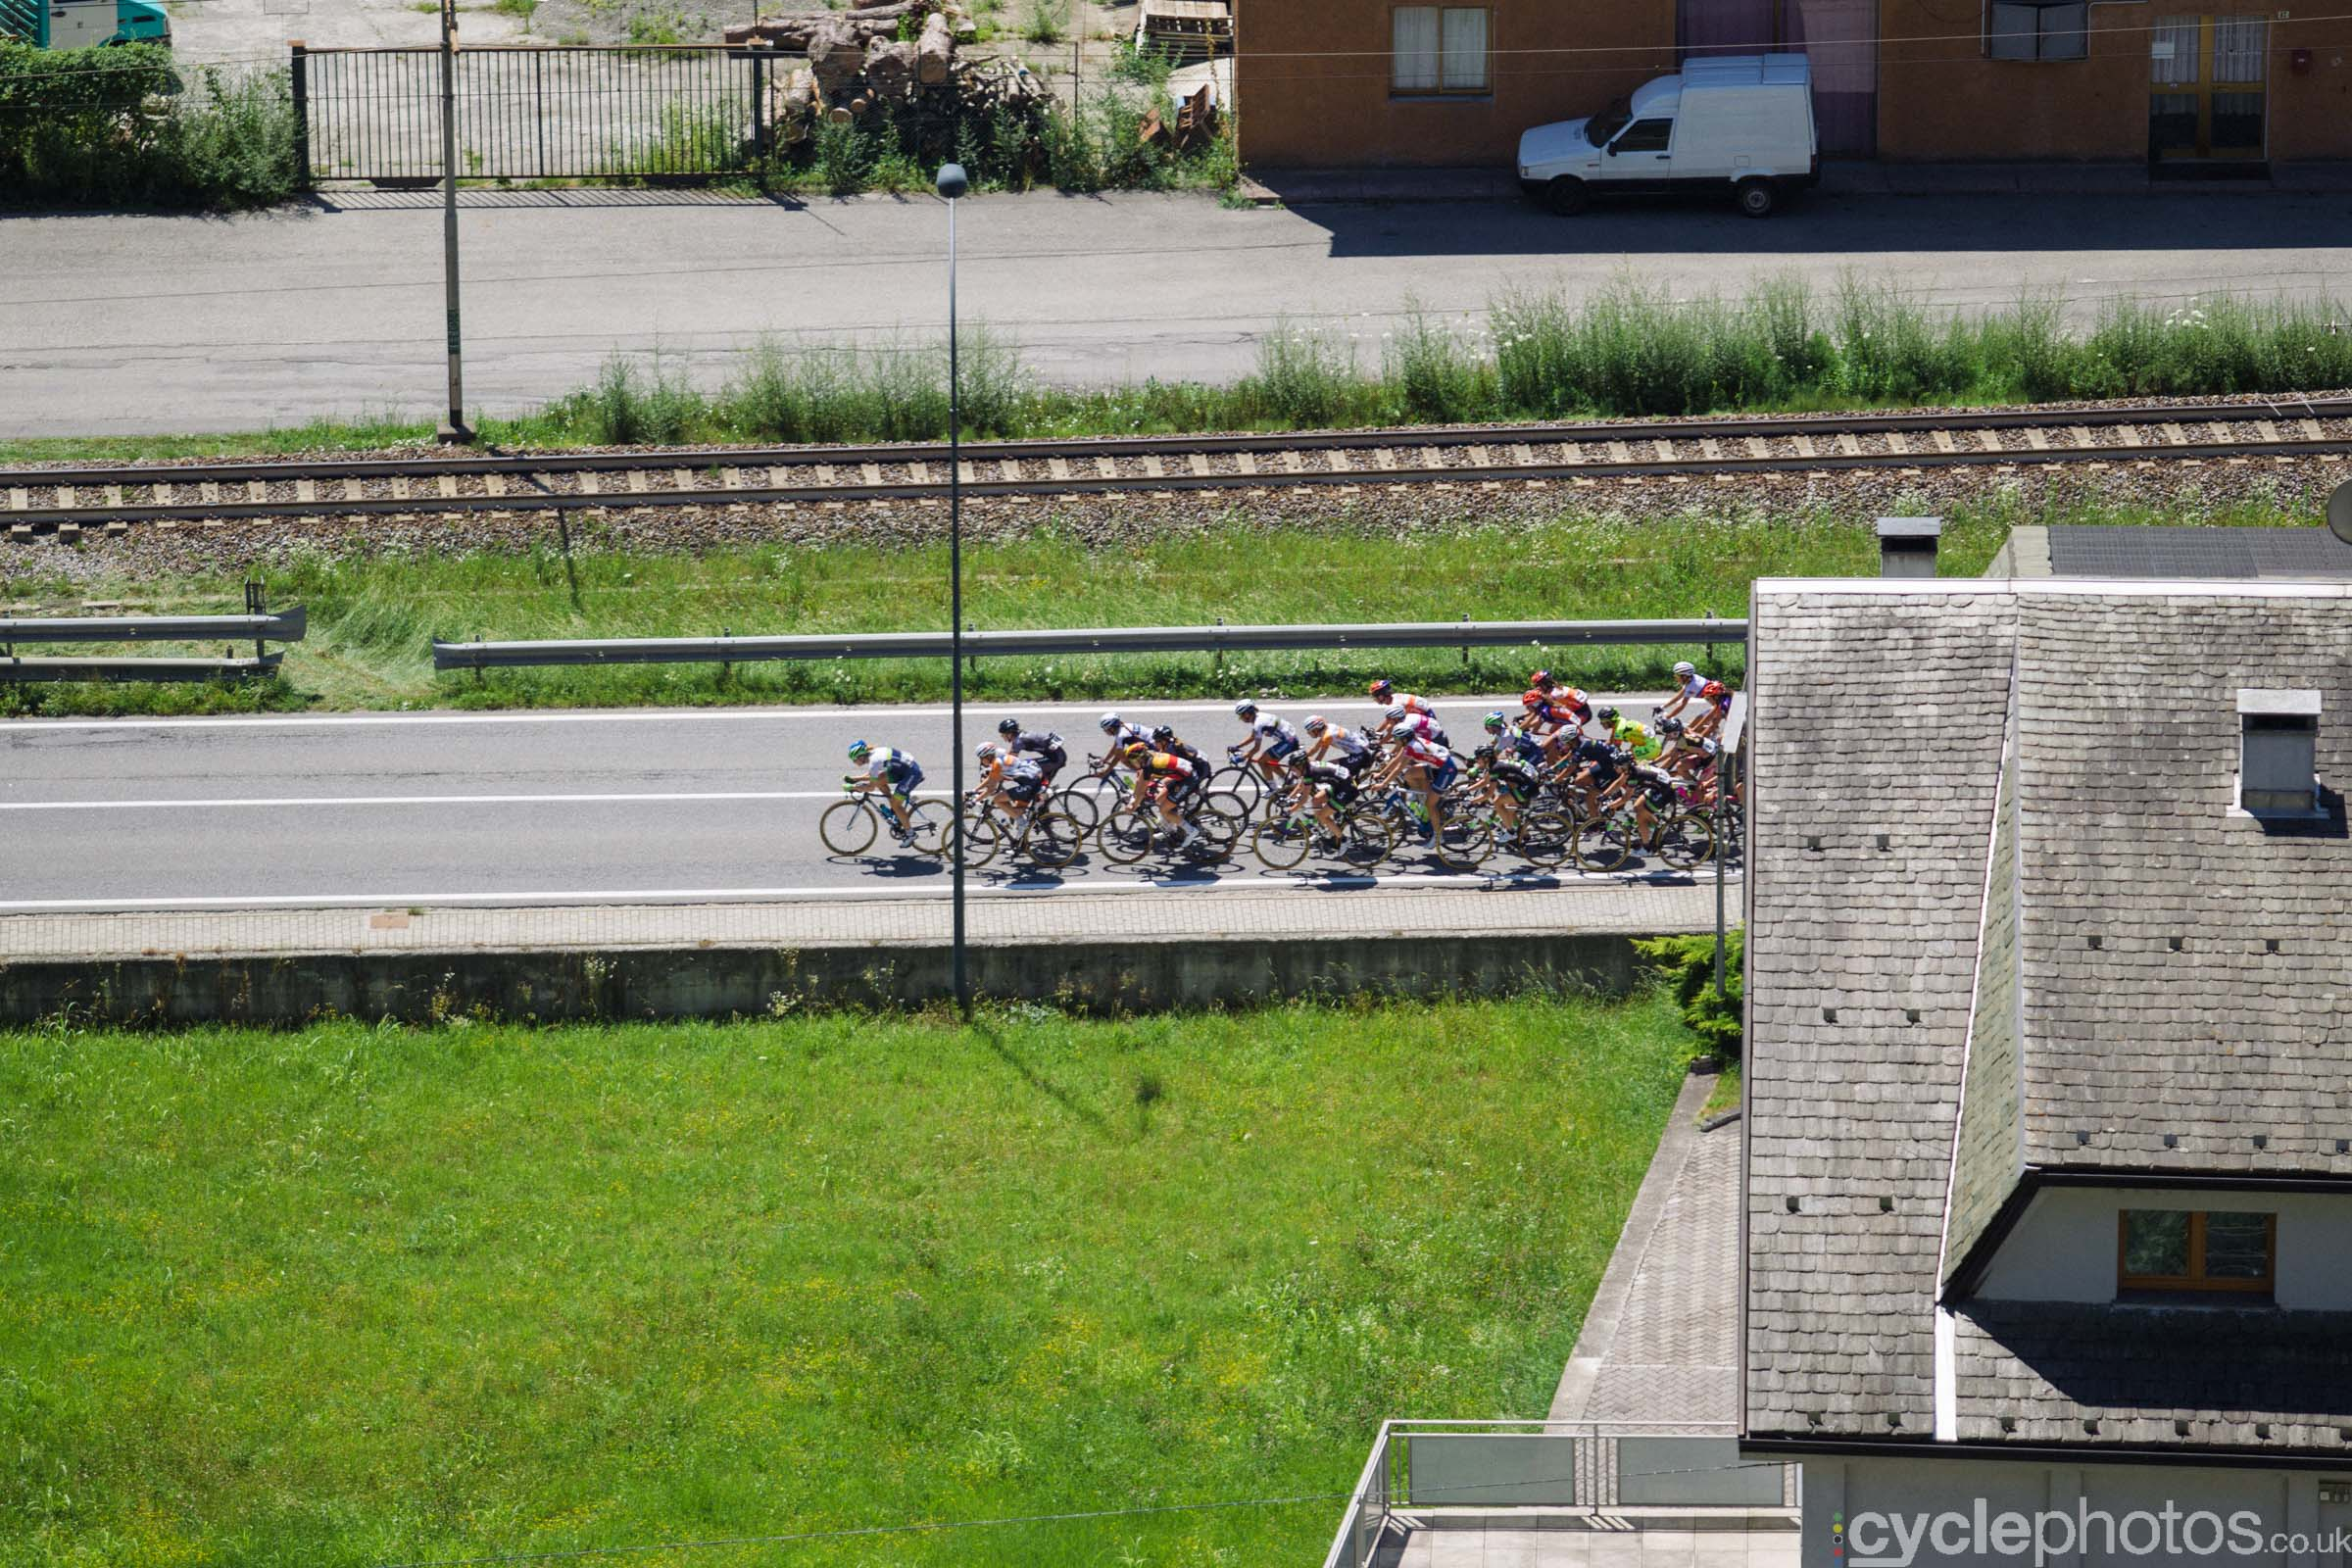 6th stage of the 2015 Giro Rosa